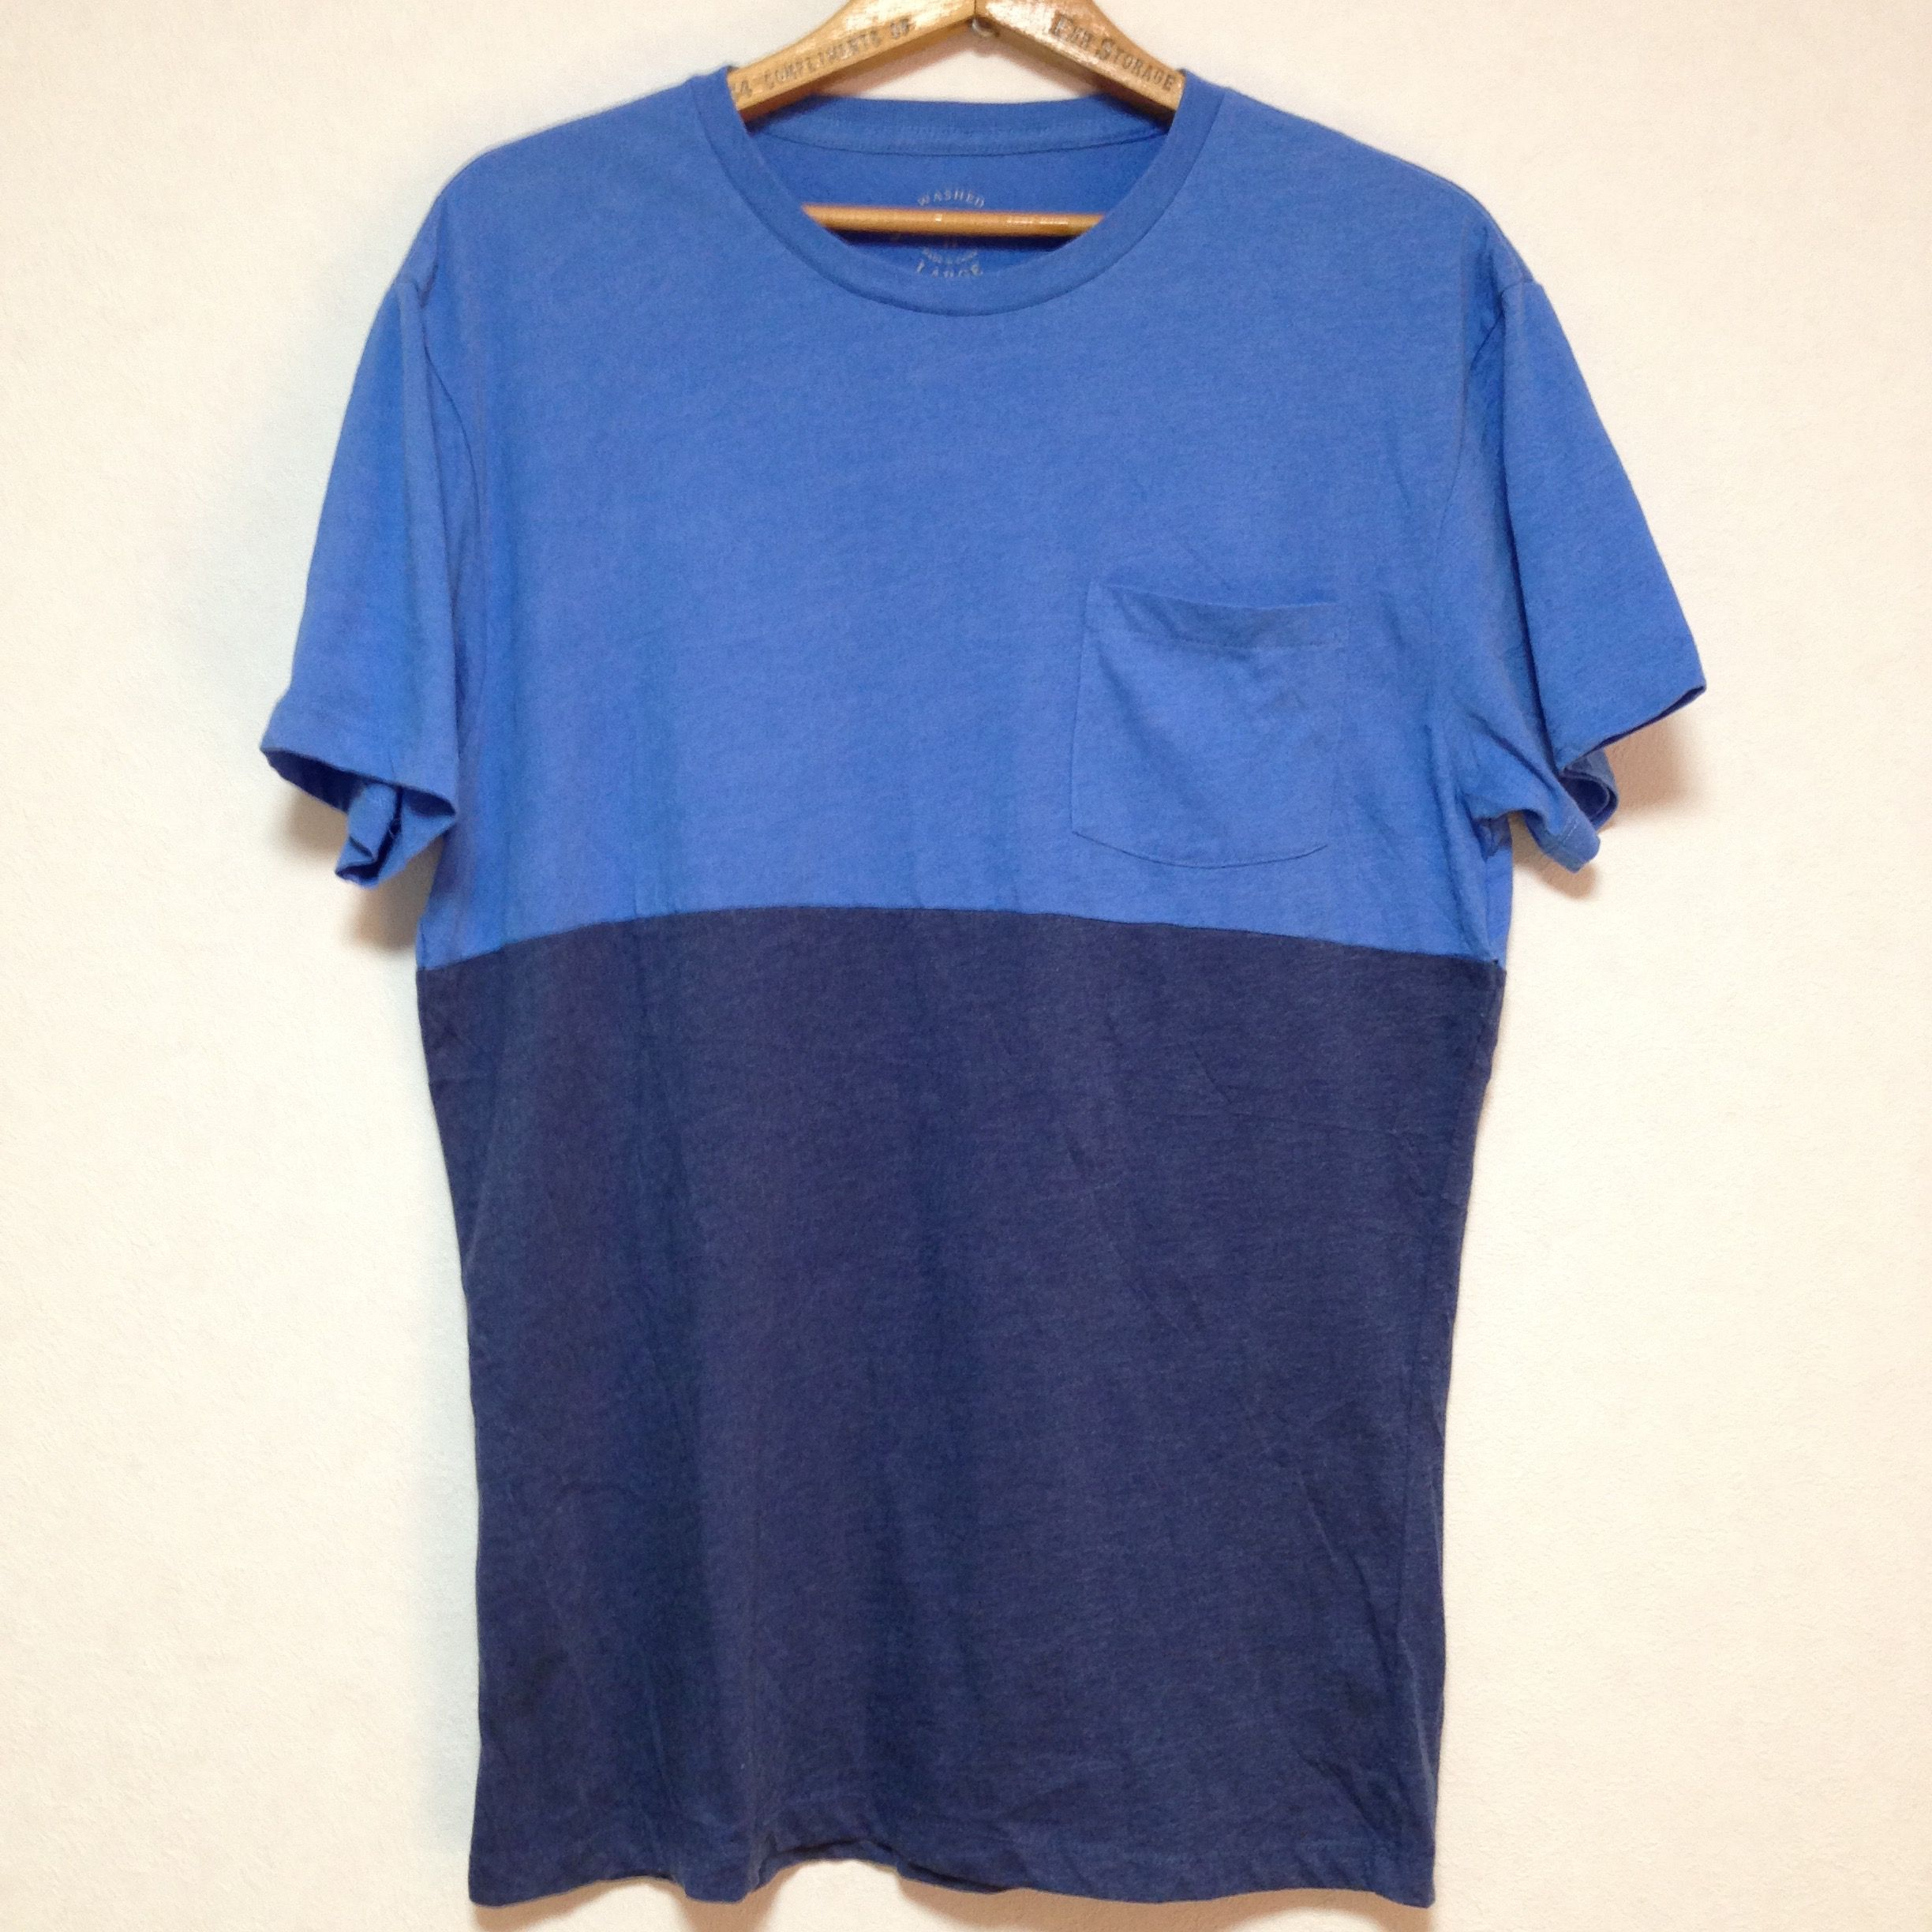 J.CREW TWO-TONED BLUE/NAVY POCKET T-SHIRT Size: L